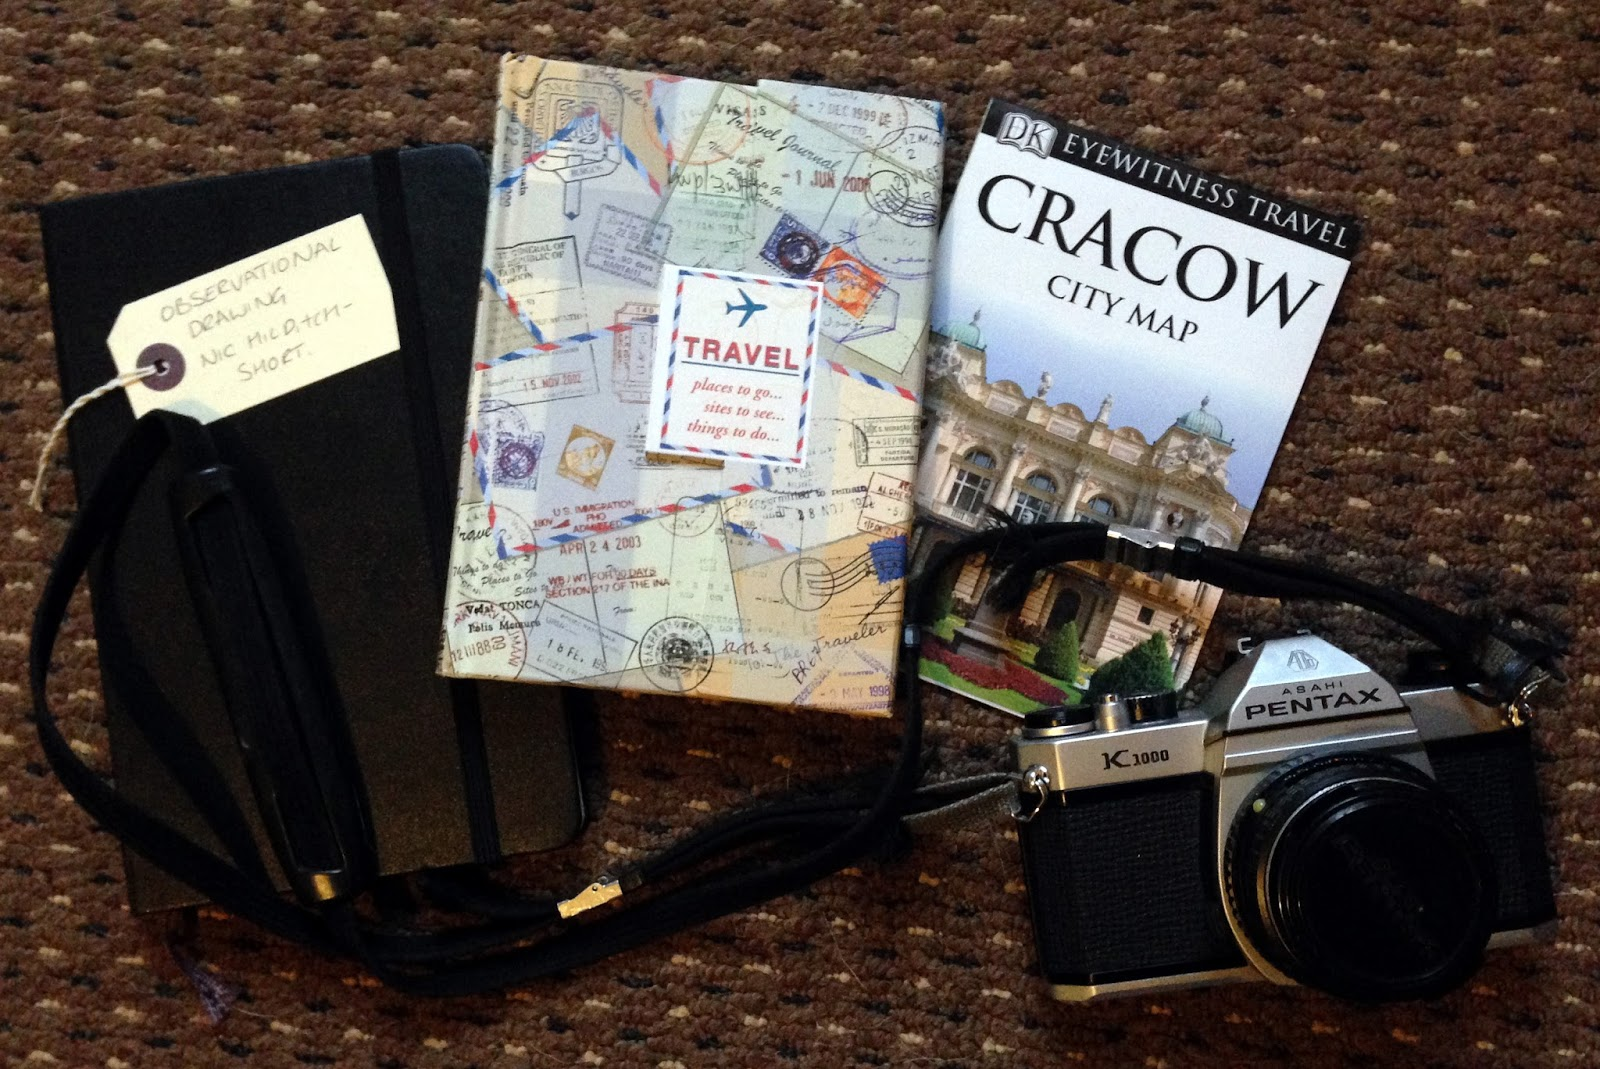 notepad, sketchpad, film, camera, pentax k1000, How To Plan Your Trip/ Travel (To Itinerary or not to Itinerary?!) vacation, planning, planner, road trip, road planner, travel planner, route, online travel, trip map, scrapbooks, Planning a Trip, tripadvisor, travel agency, tours, guide book, sketching,